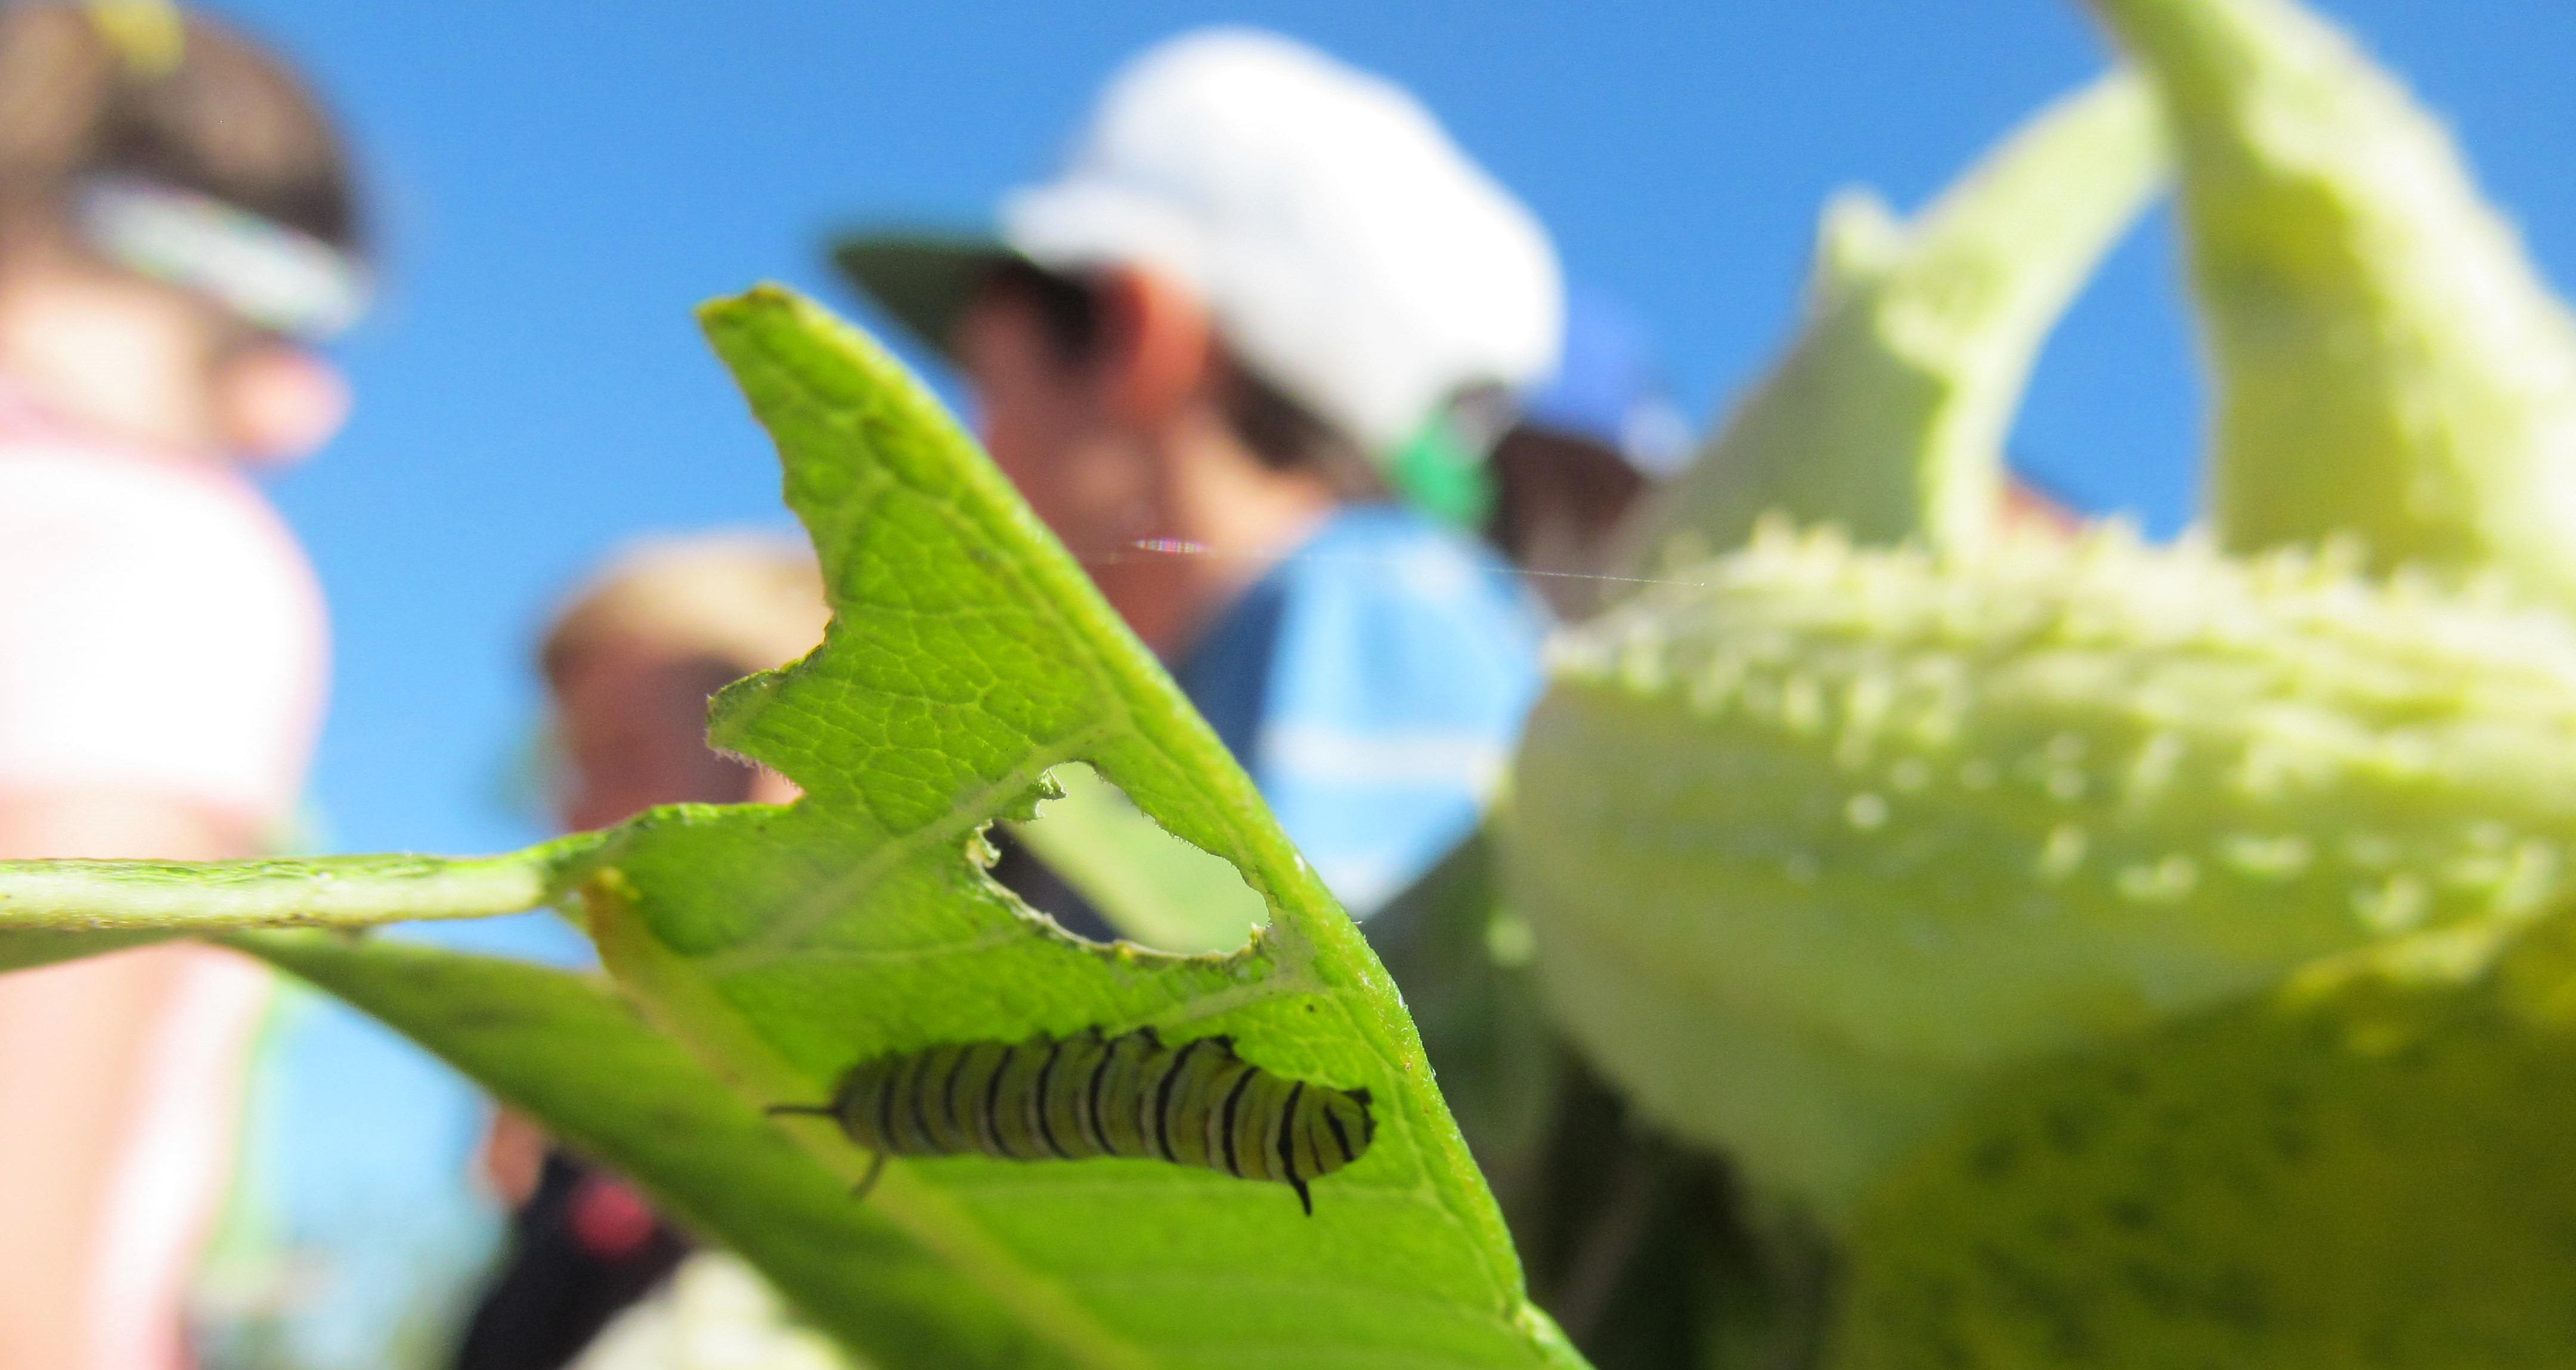 Monarch caterpillar under a milkweed leaf with campers nearby